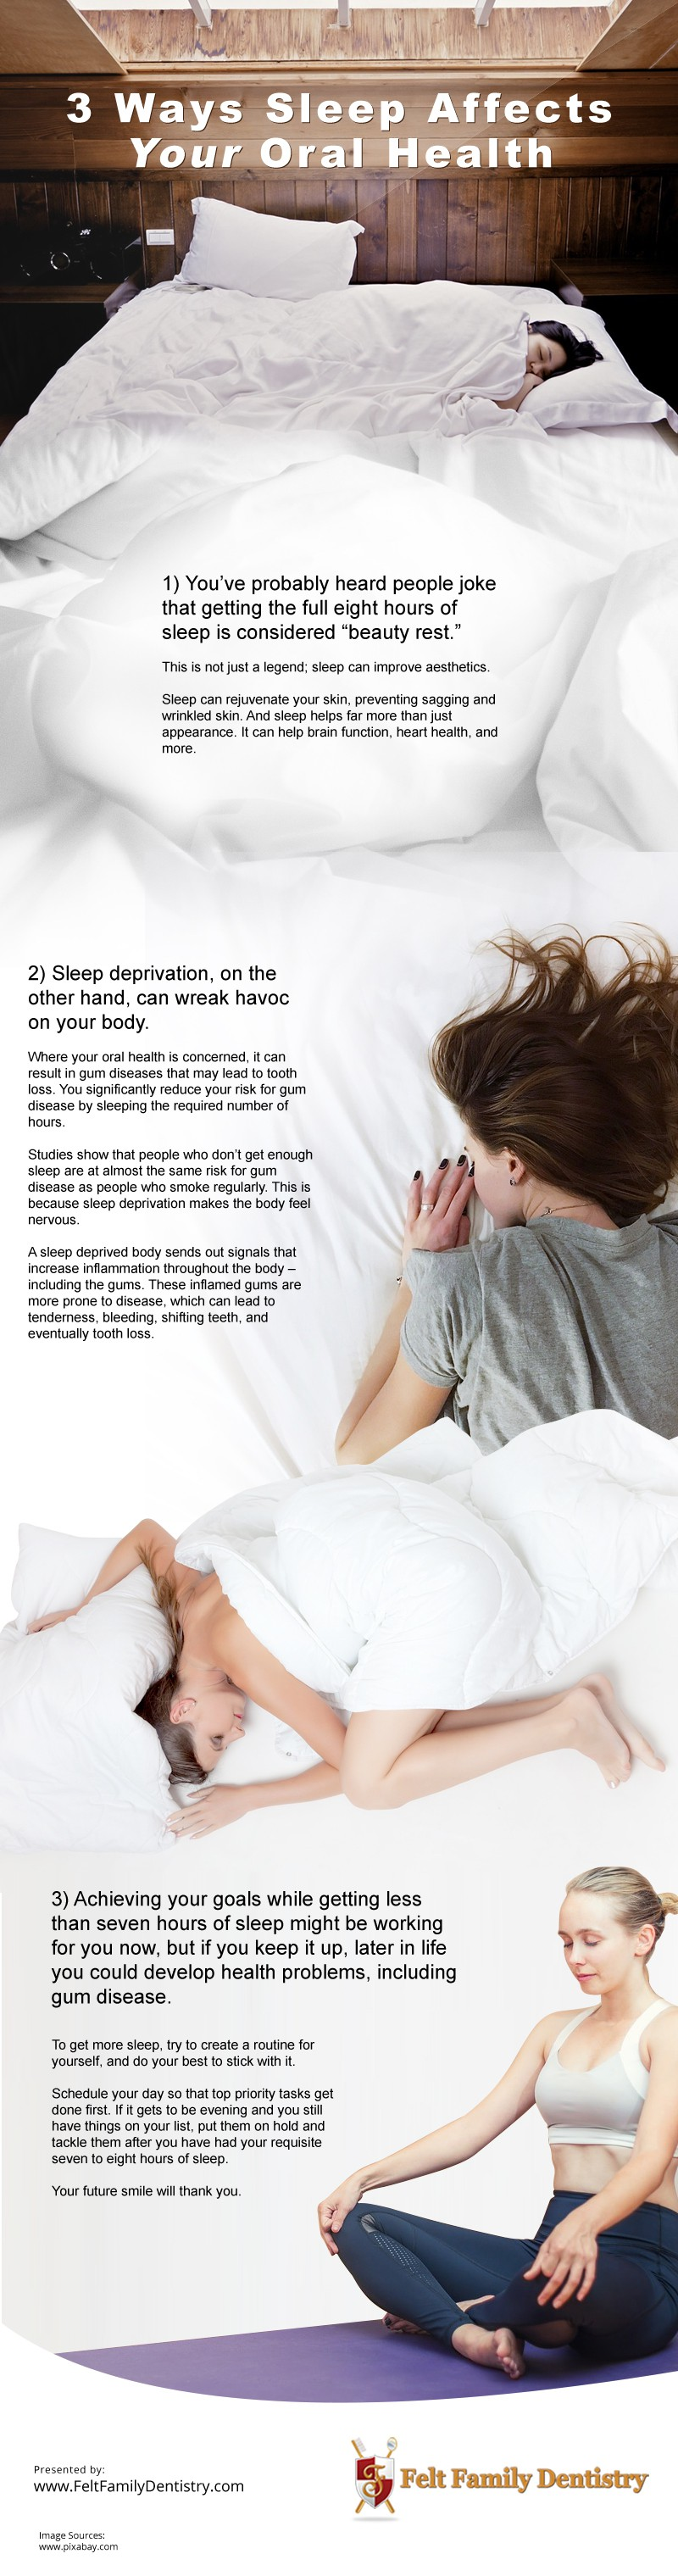 3 Ways Sleep Affects Your Oral Health Infographic